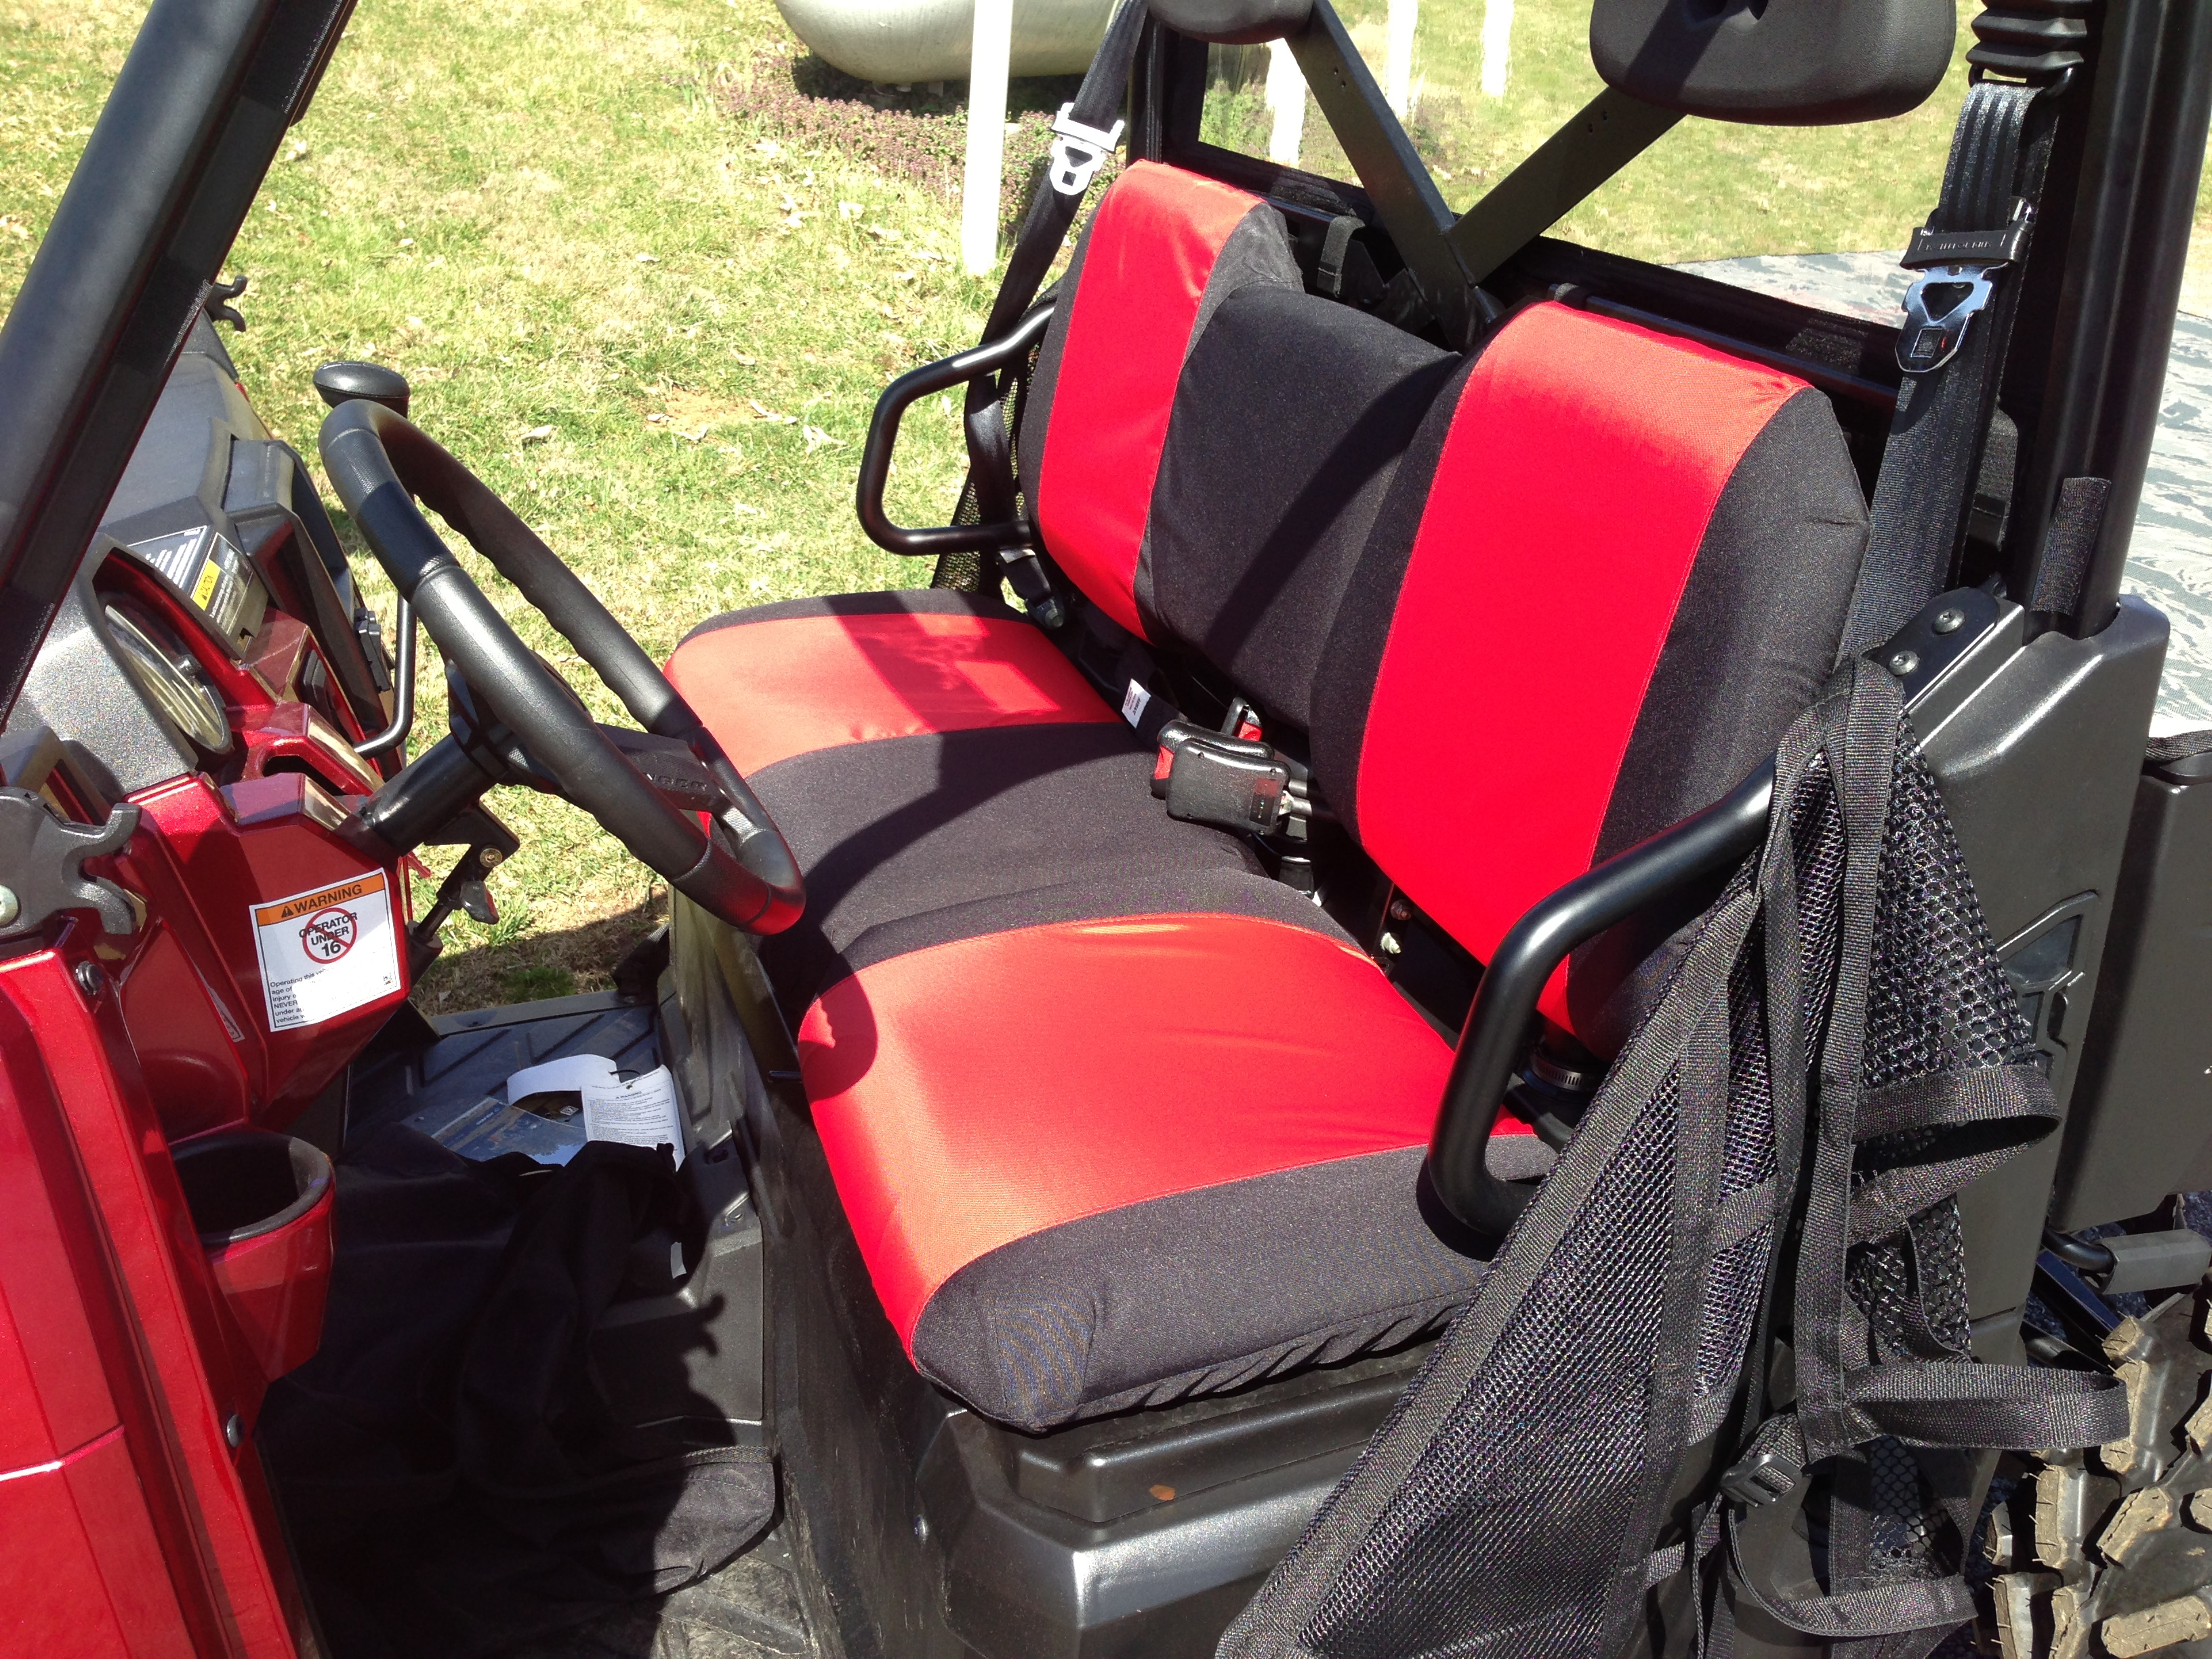 Polaris Ranger Seat Cover For Sale